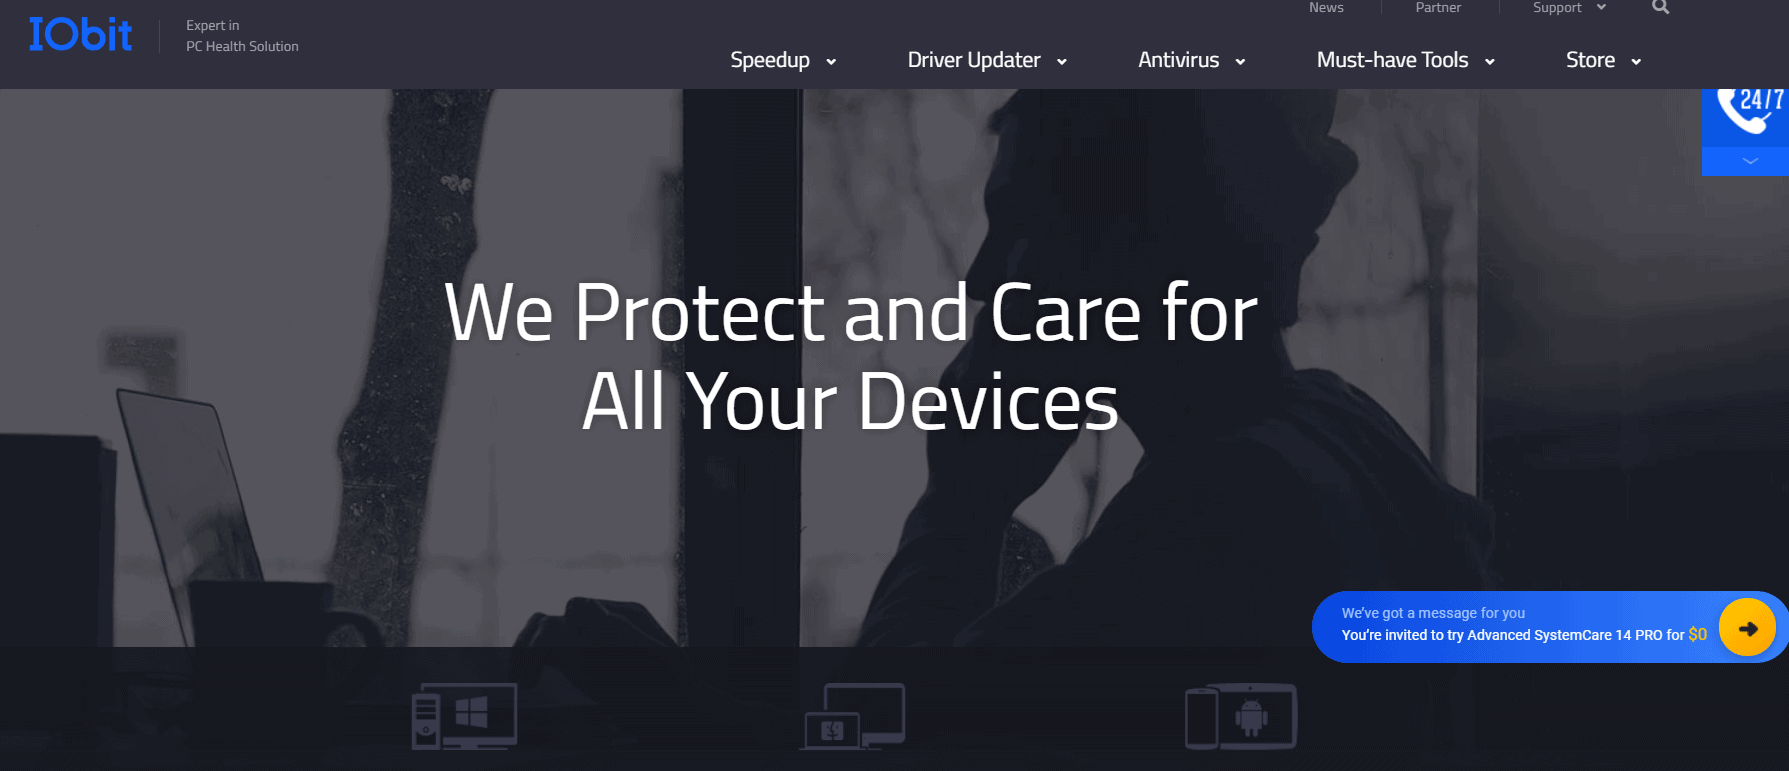 IObit advance system protection